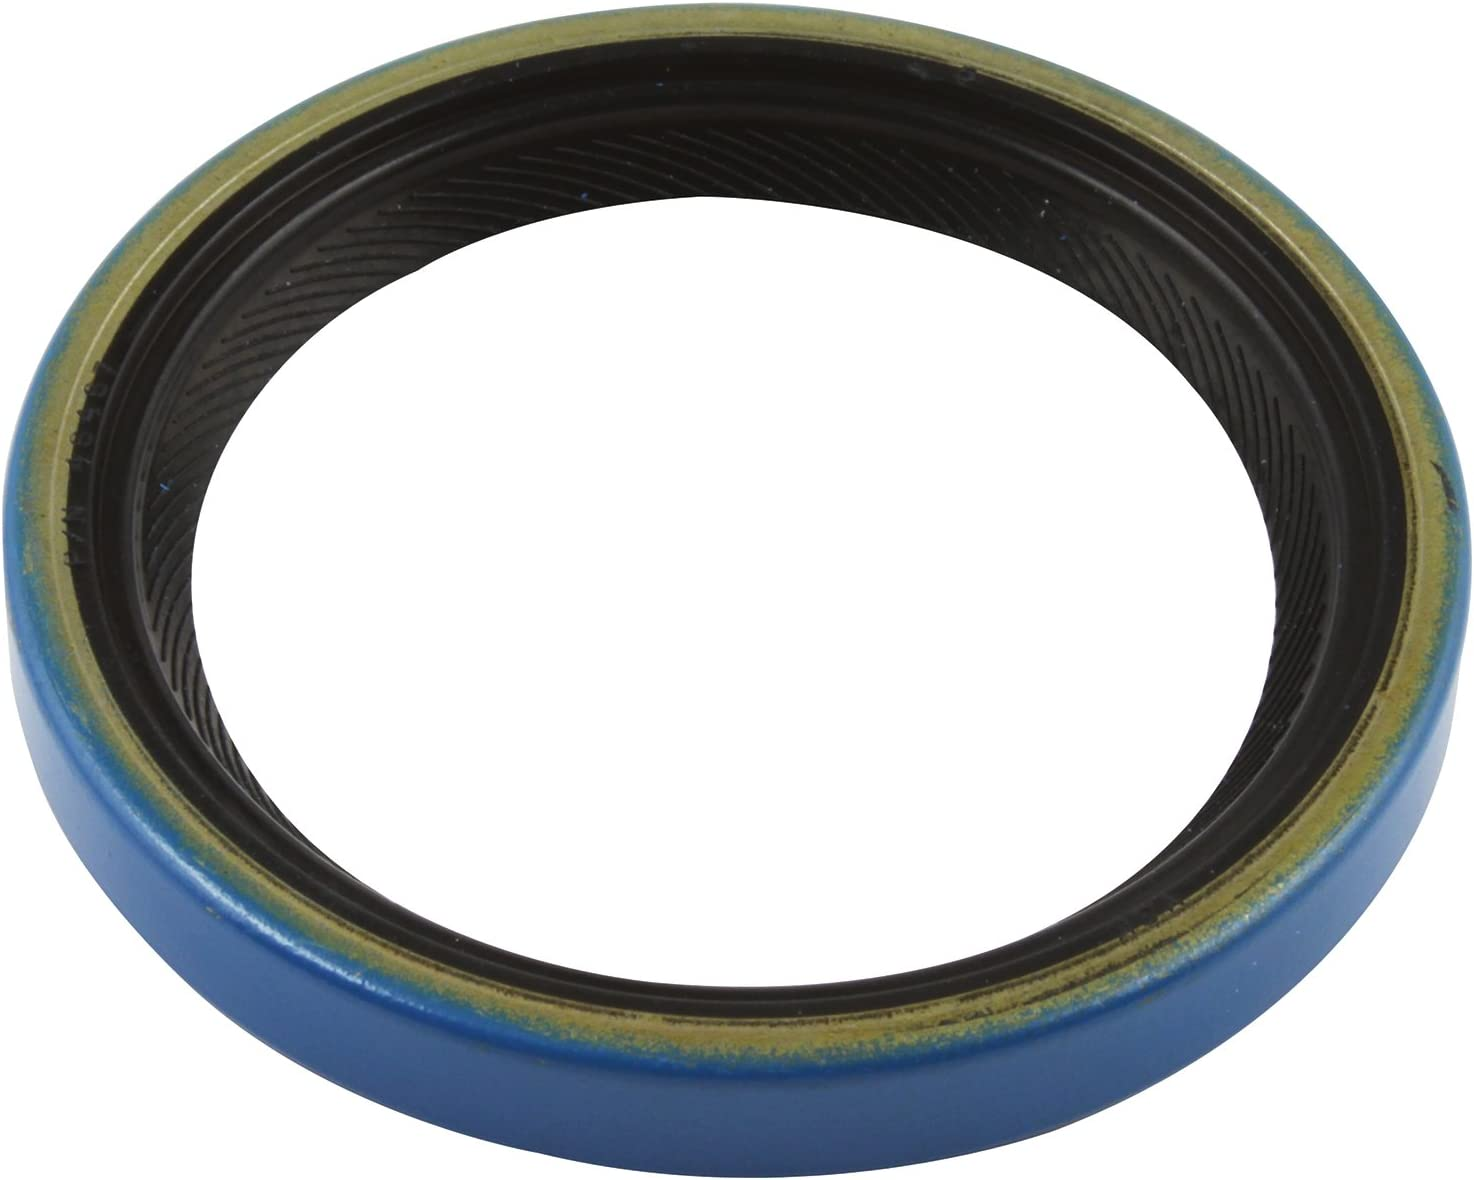 Allstar ALL87282 Big Block Chevy Engine Timing Cover Seal for Steel and Aluminum Cover